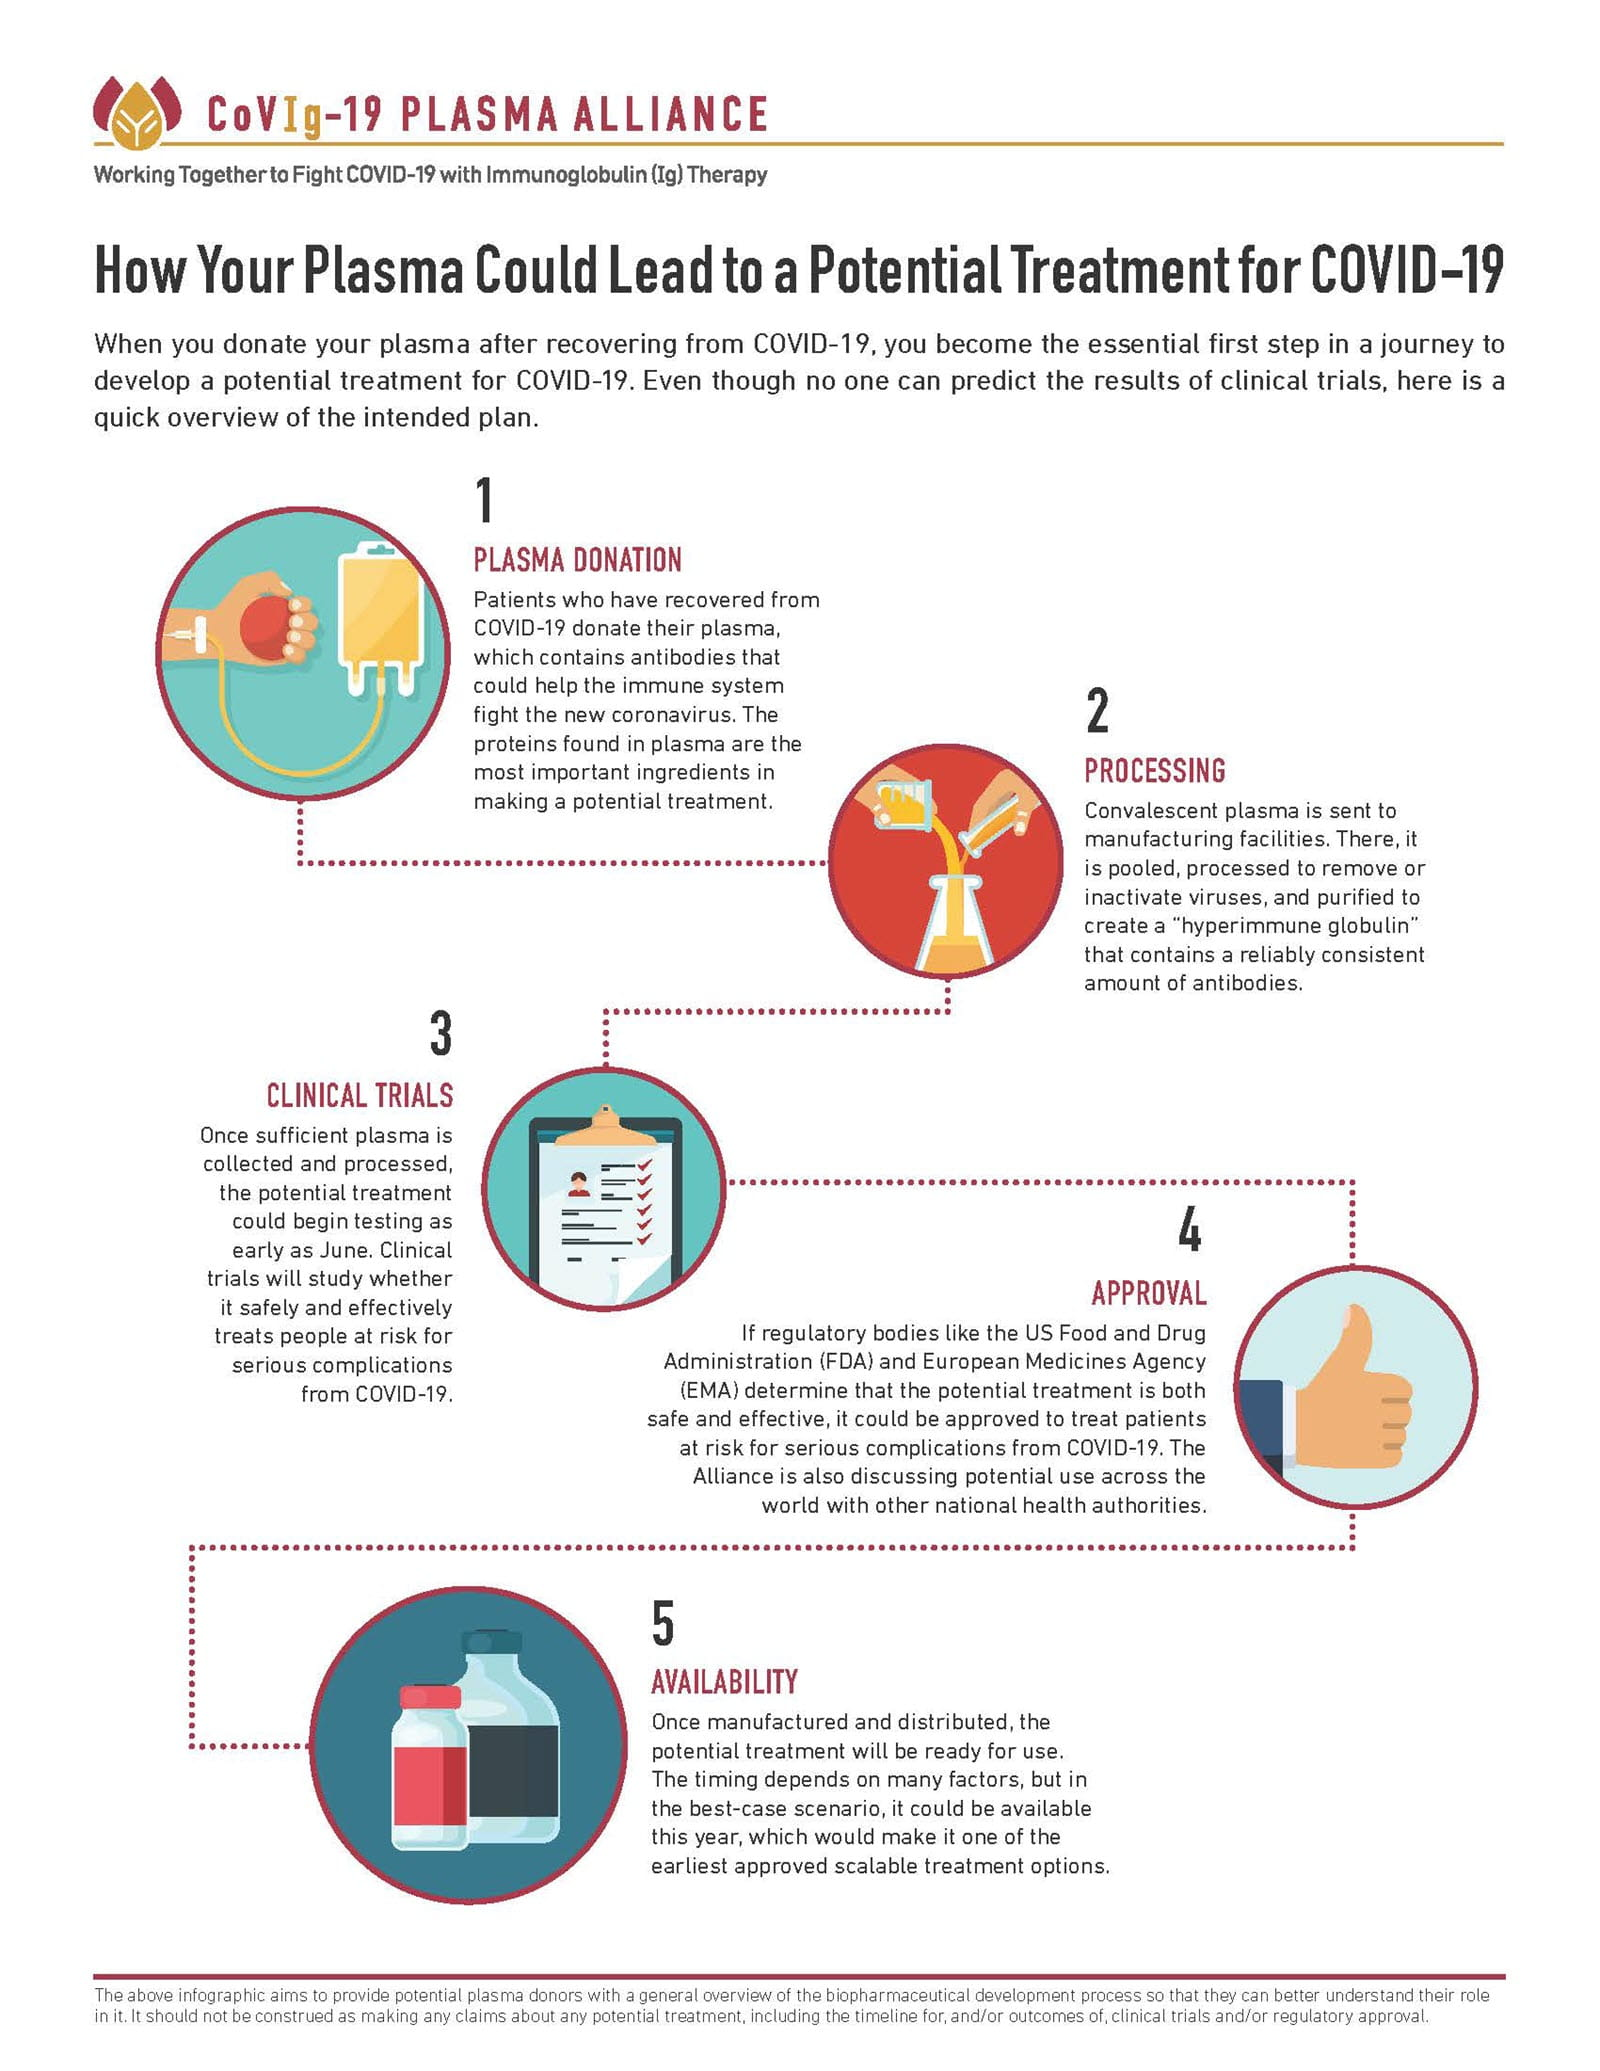 5 steps to developing a potential hyperimmune treatment